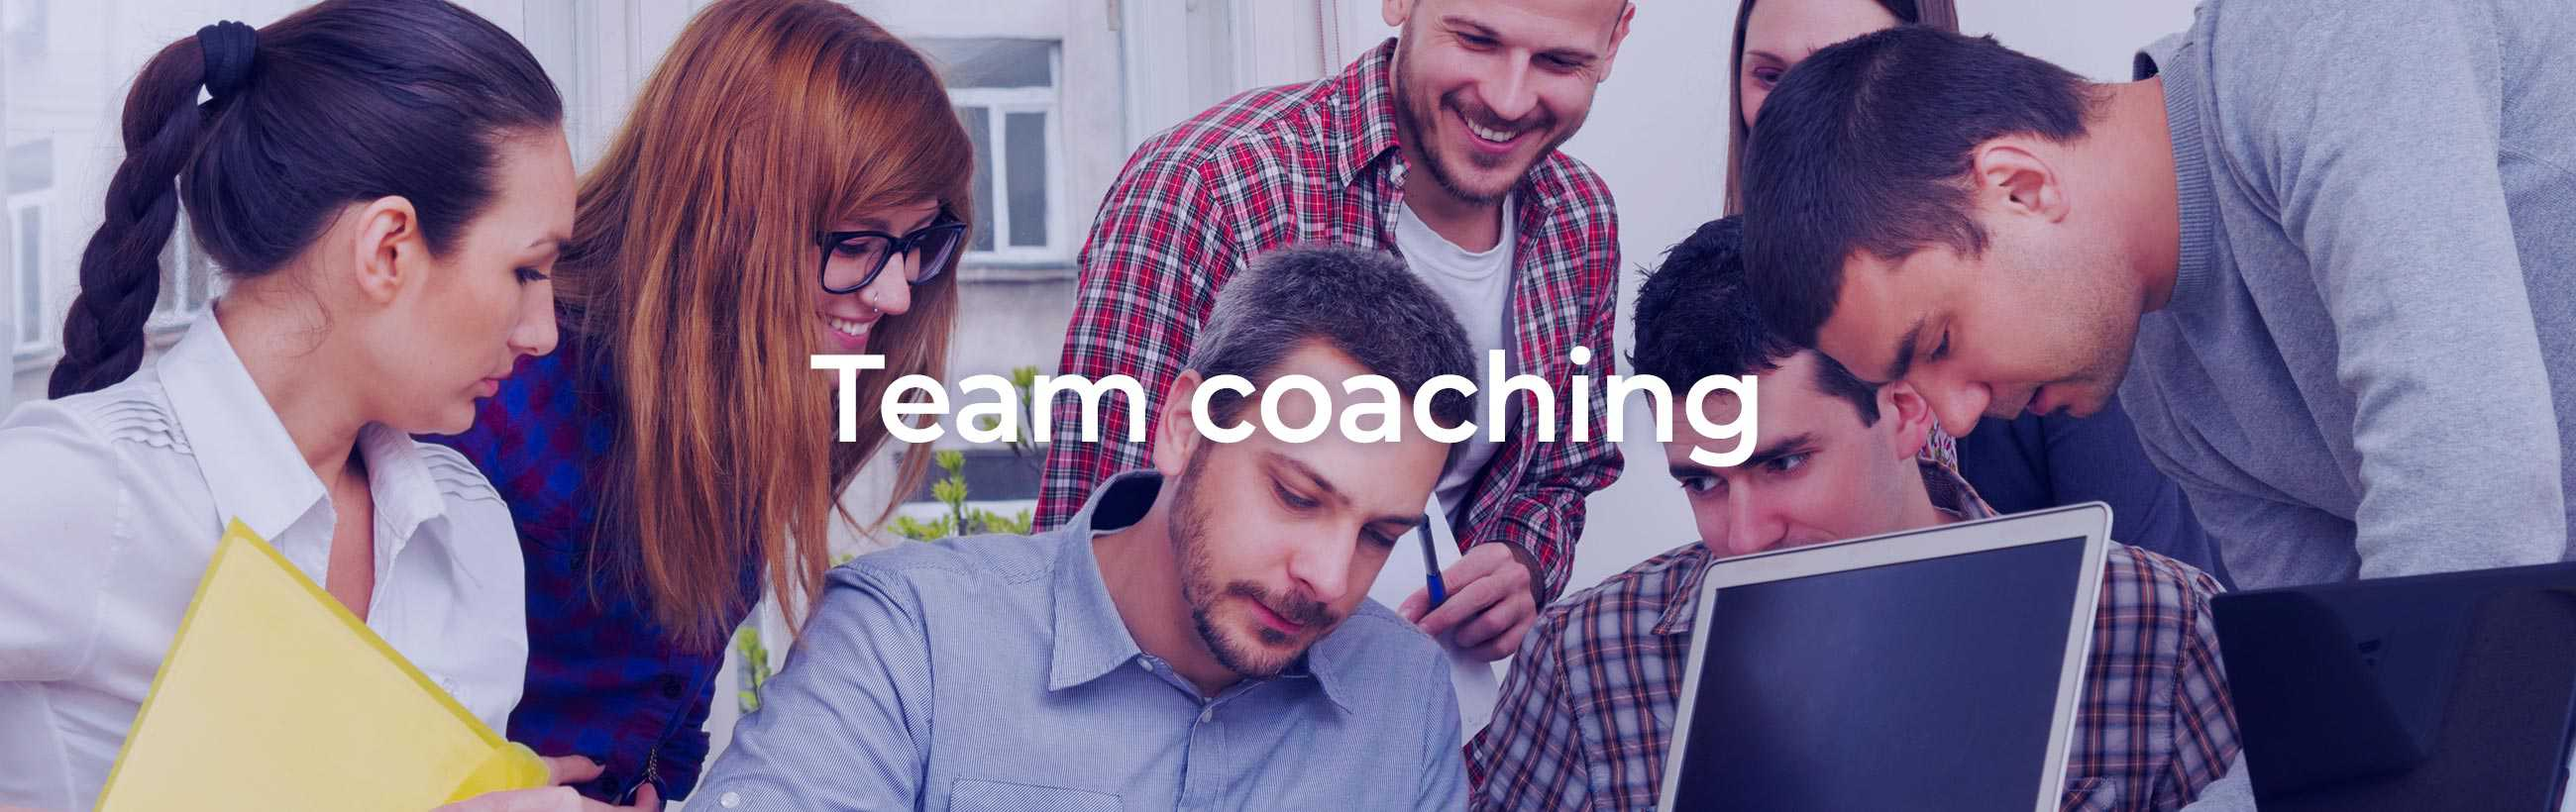 Team coaching - Blueberry Hill